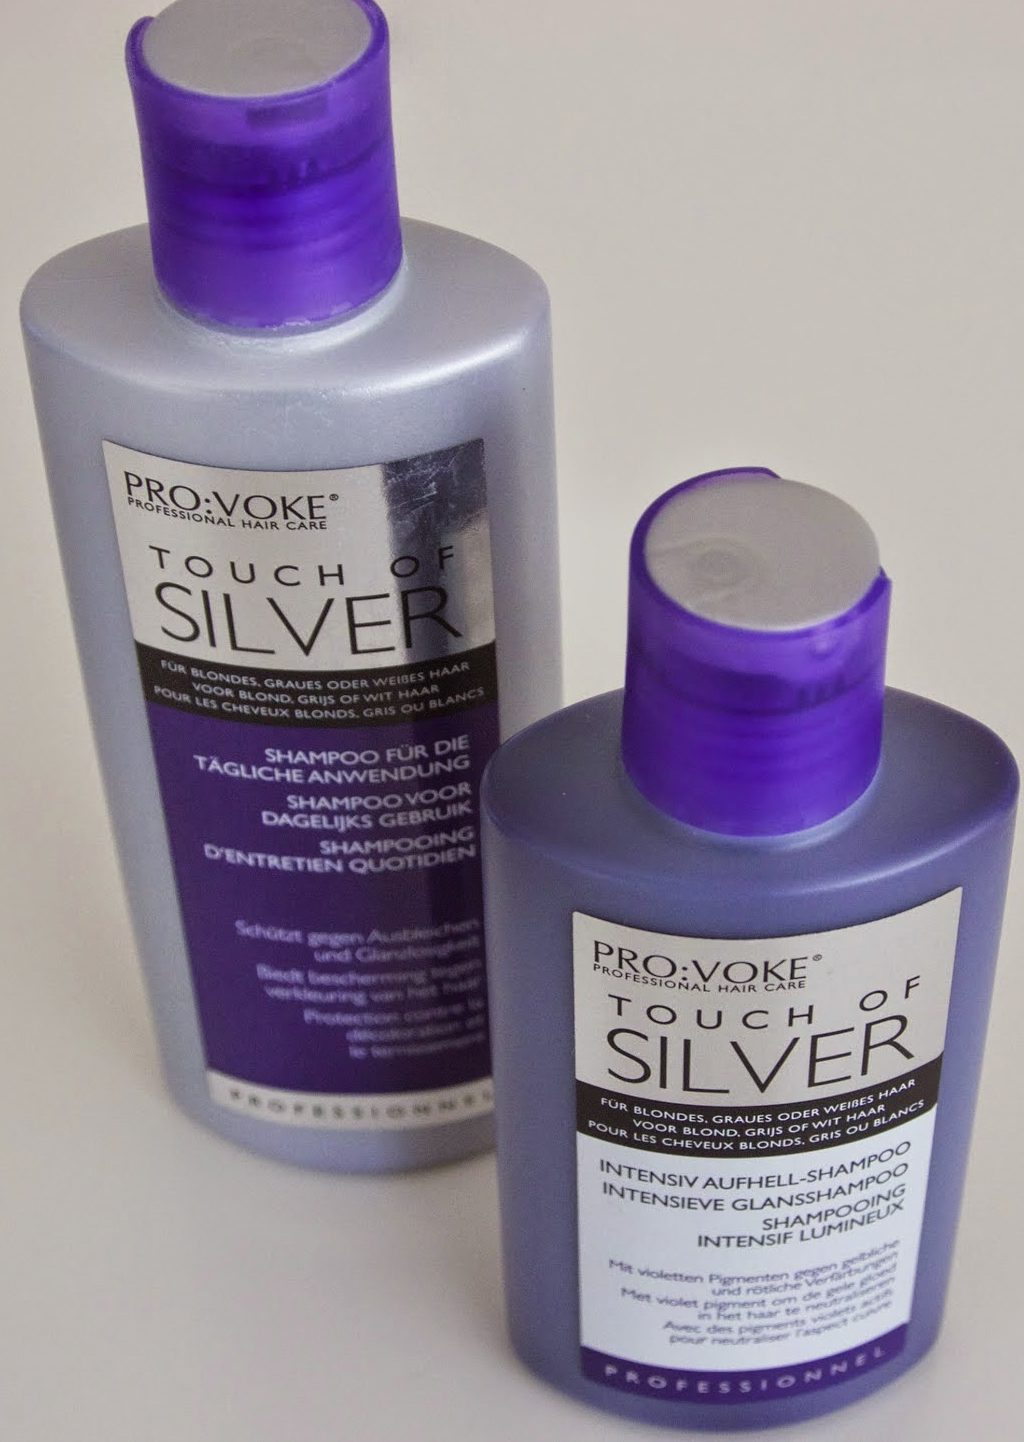 provoke Touch of silver intensieve glansshampoo review shampoo